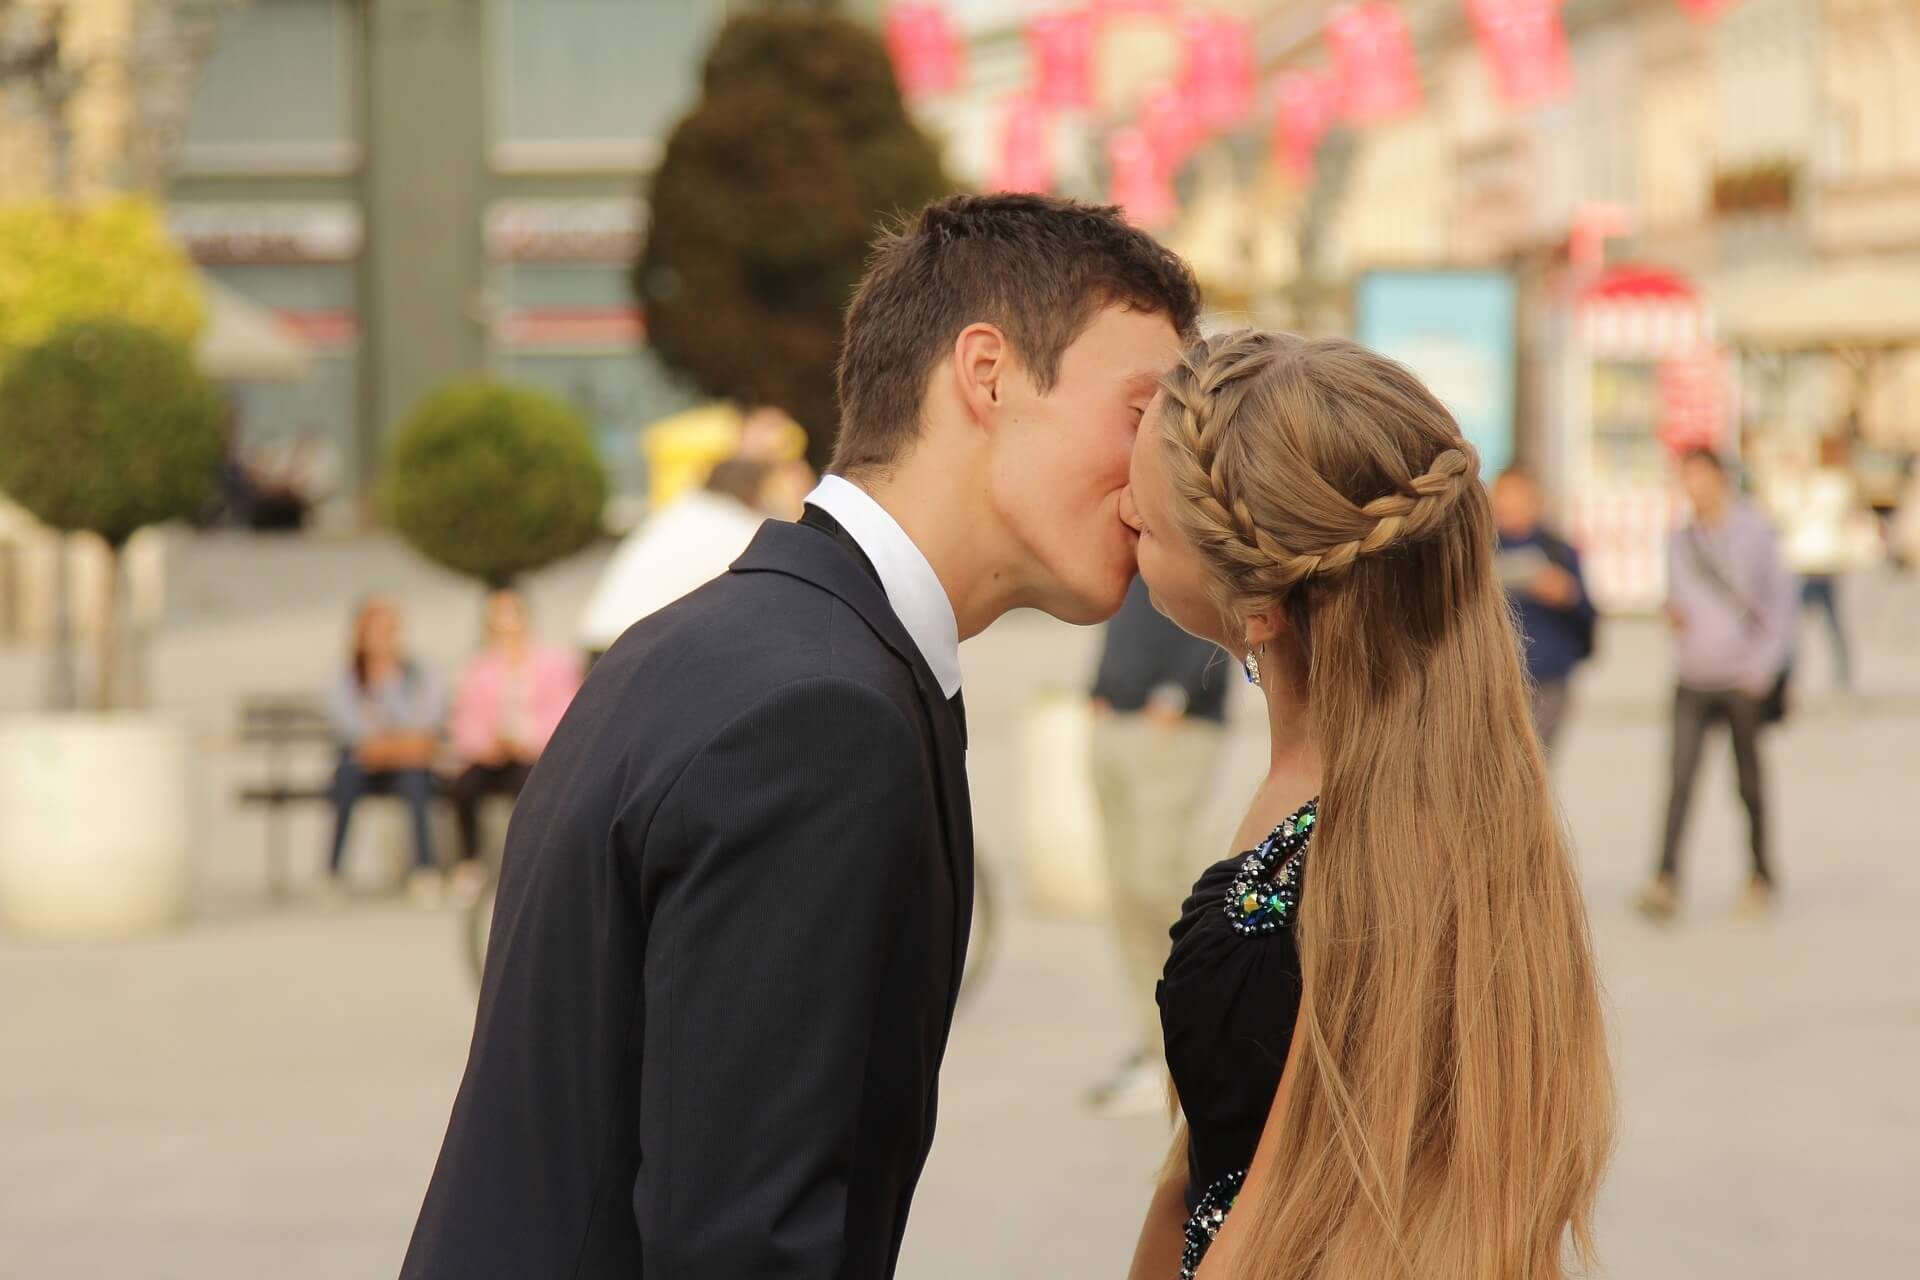 Foreigner Couples Kissing in Public